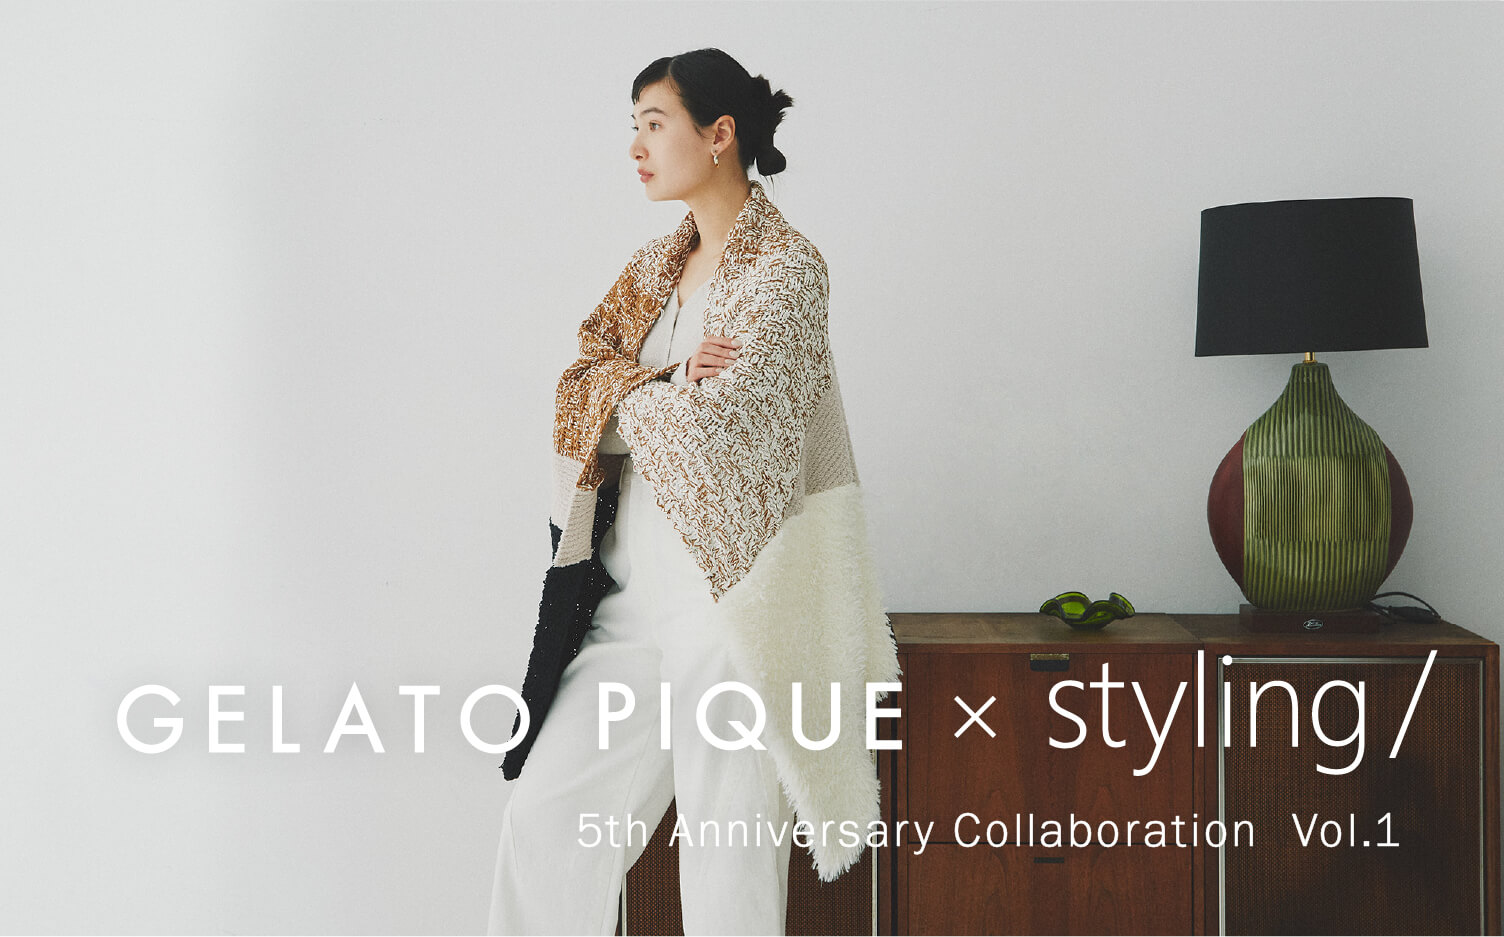 GELATO PIQUE × styling/ 5th Anniversary Collaboration  Vol.1